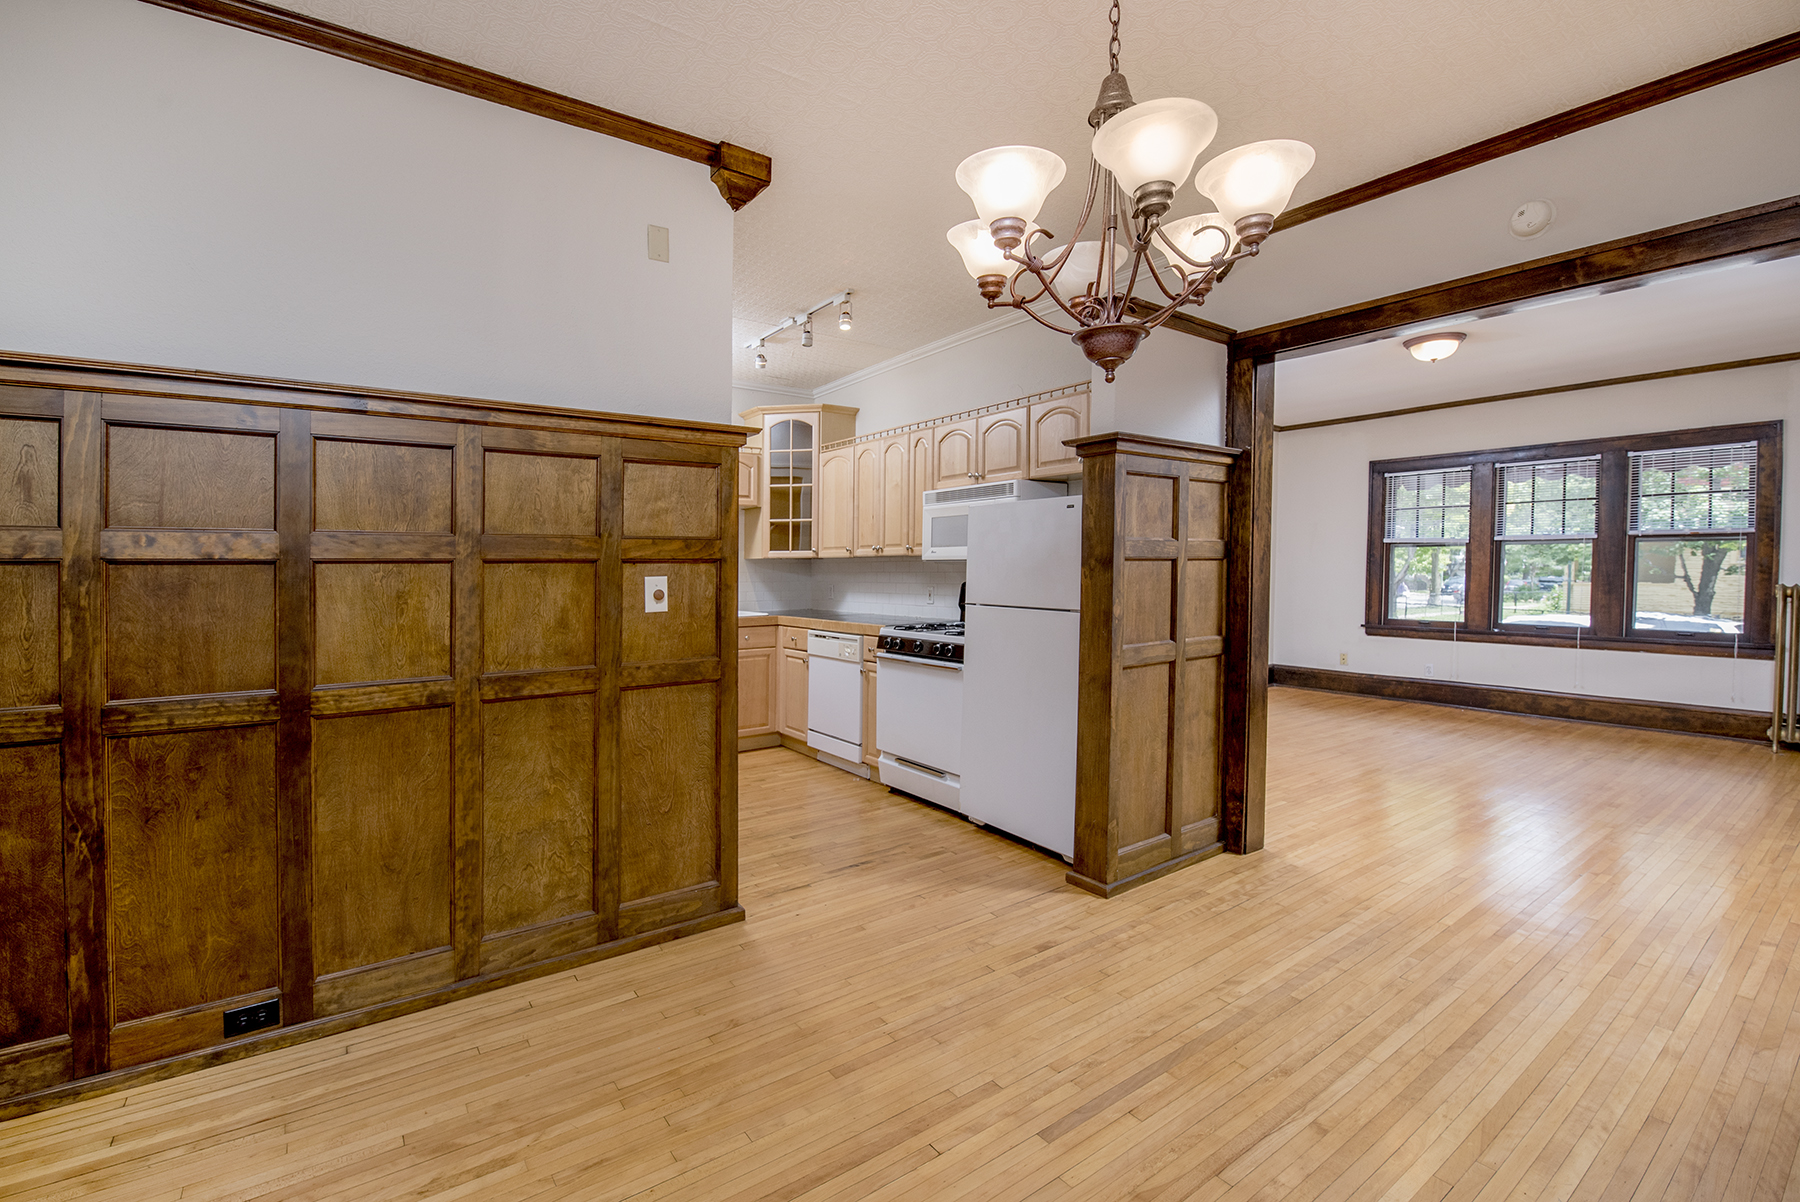 Beautifully restored wood paneling is original to the building's construction.